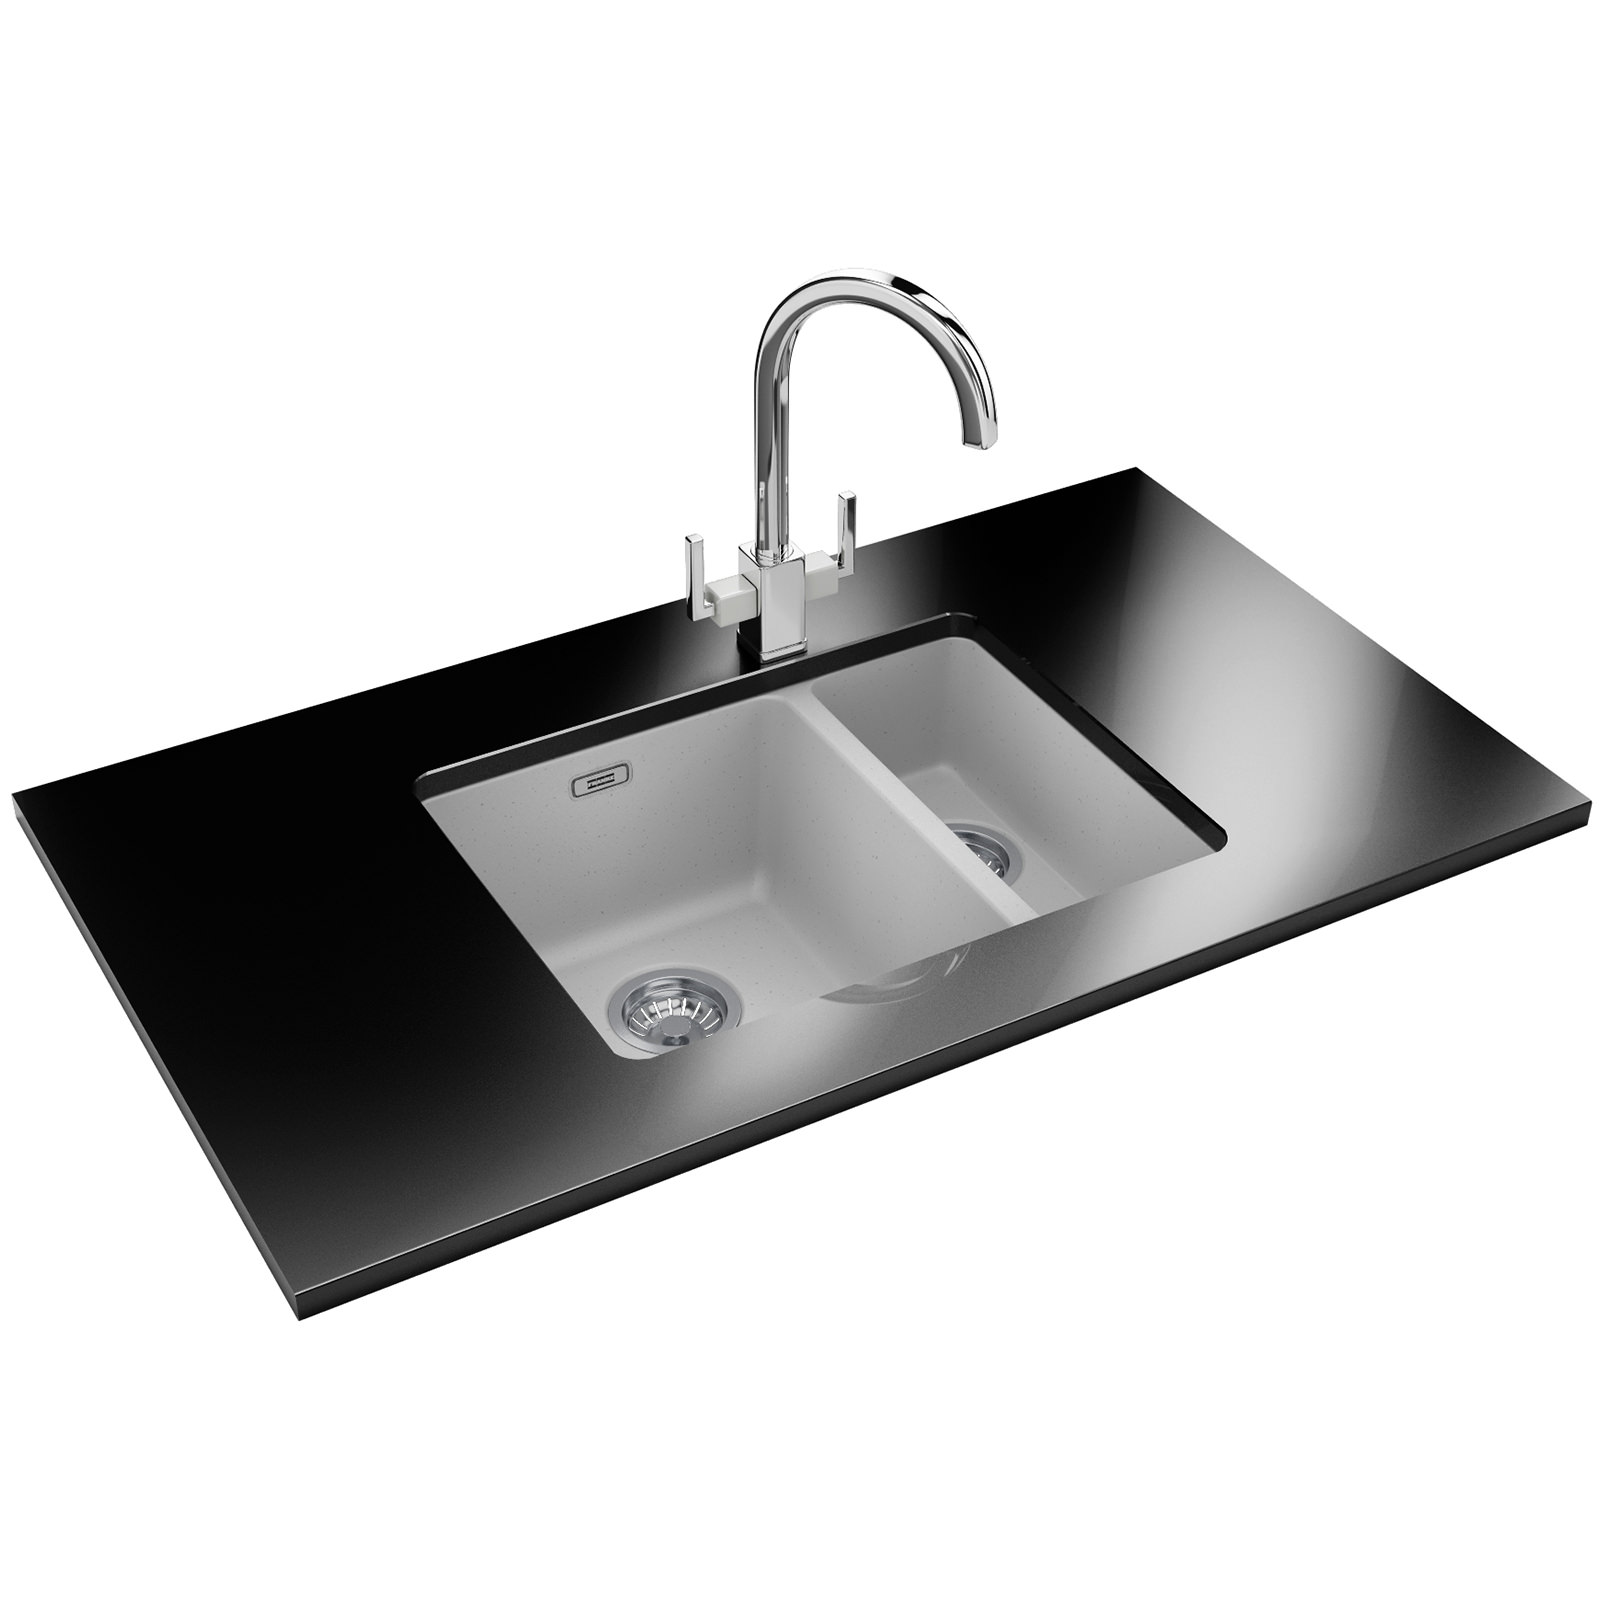 Franke Kubus Kbg 160 Fragranite 1 5 Bowl Undermount Sink